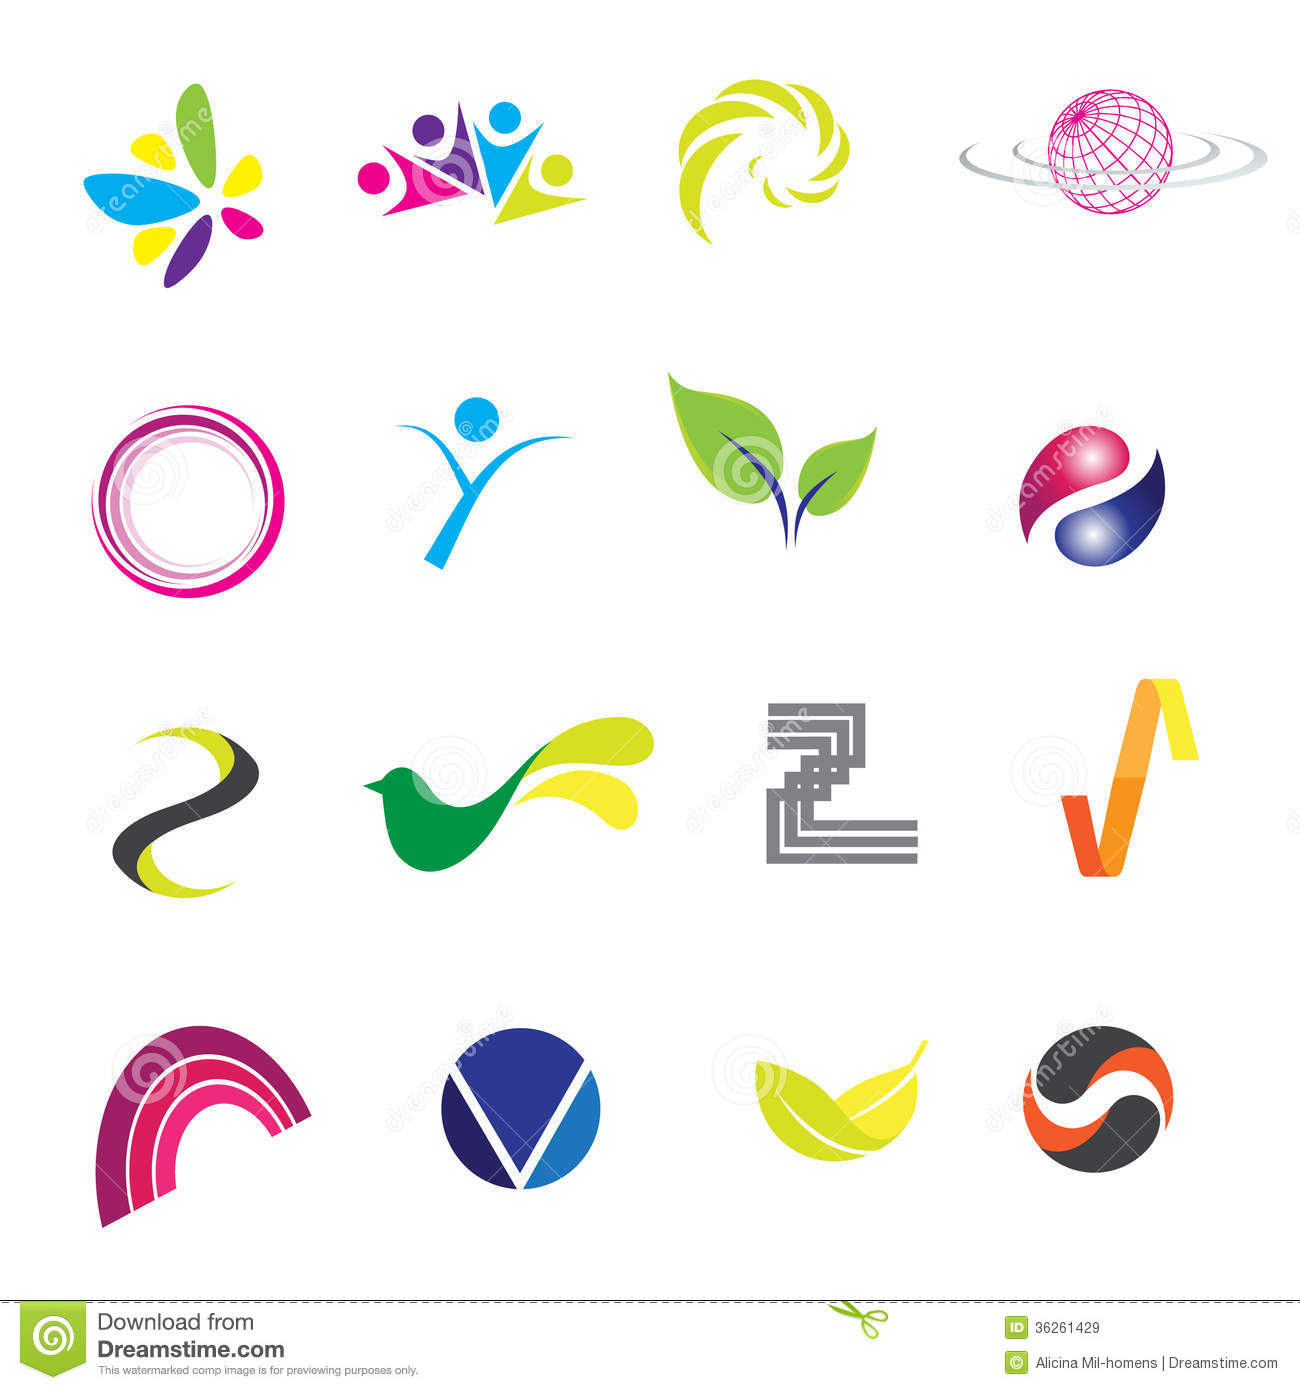 logos stock vector illustration of advertising icon 36261429 rh dreamstime com royalty free logos for commercial use royalty free logo designs